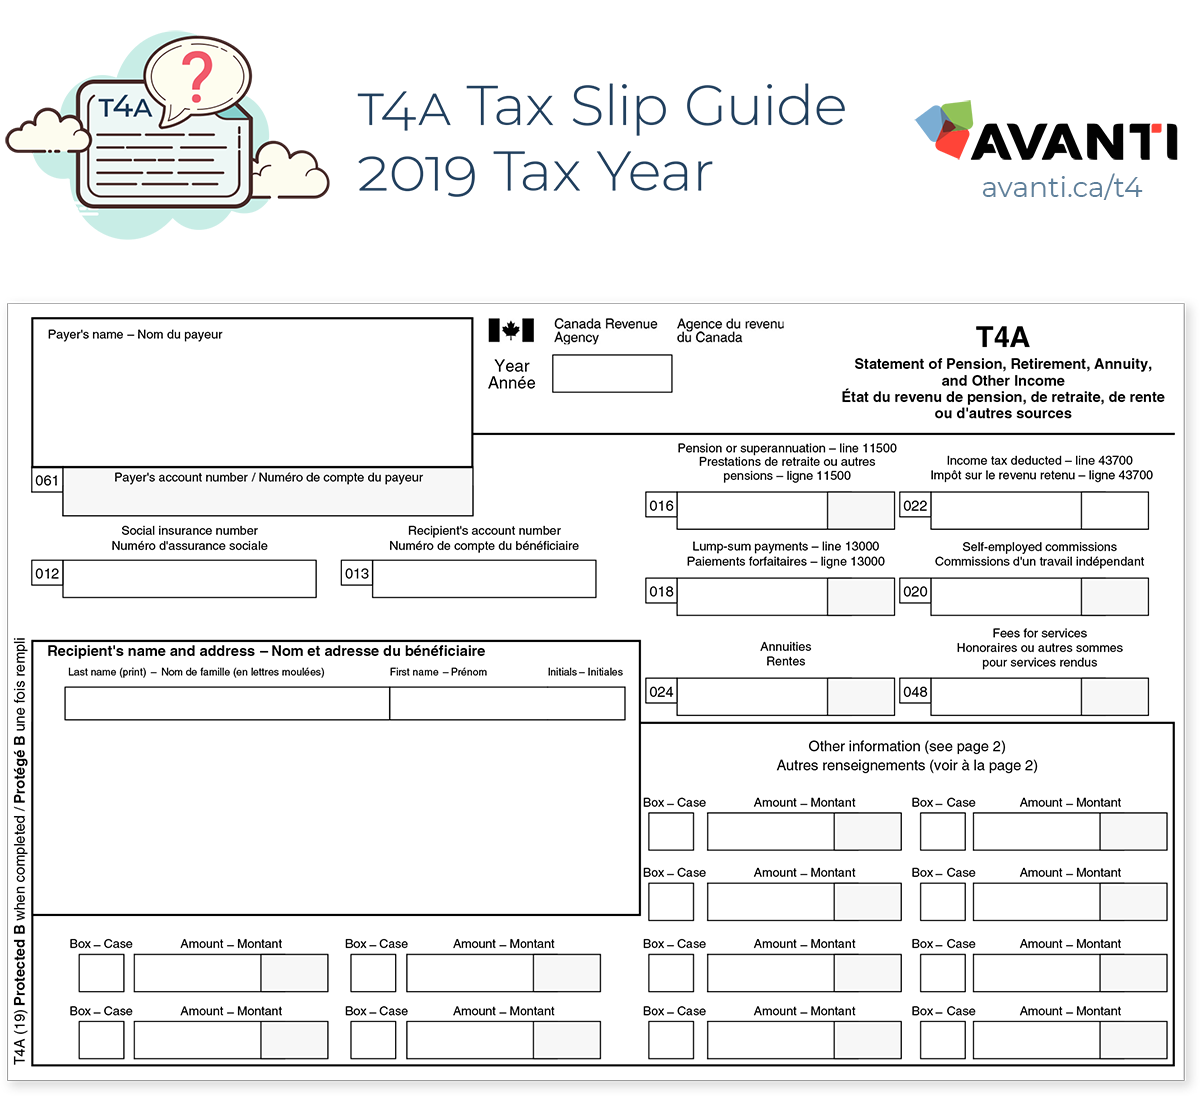 T4A Tax Slip Guide